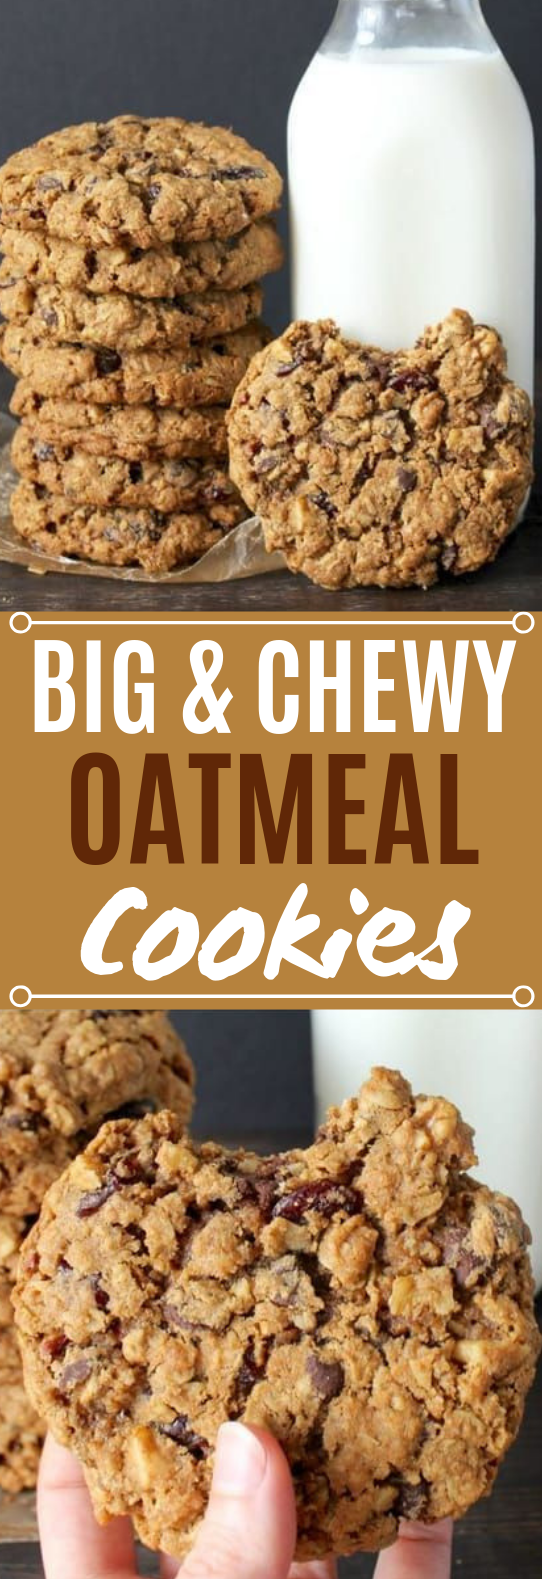 Big and Chewy Oatmeal Cookies #cookies #recipes